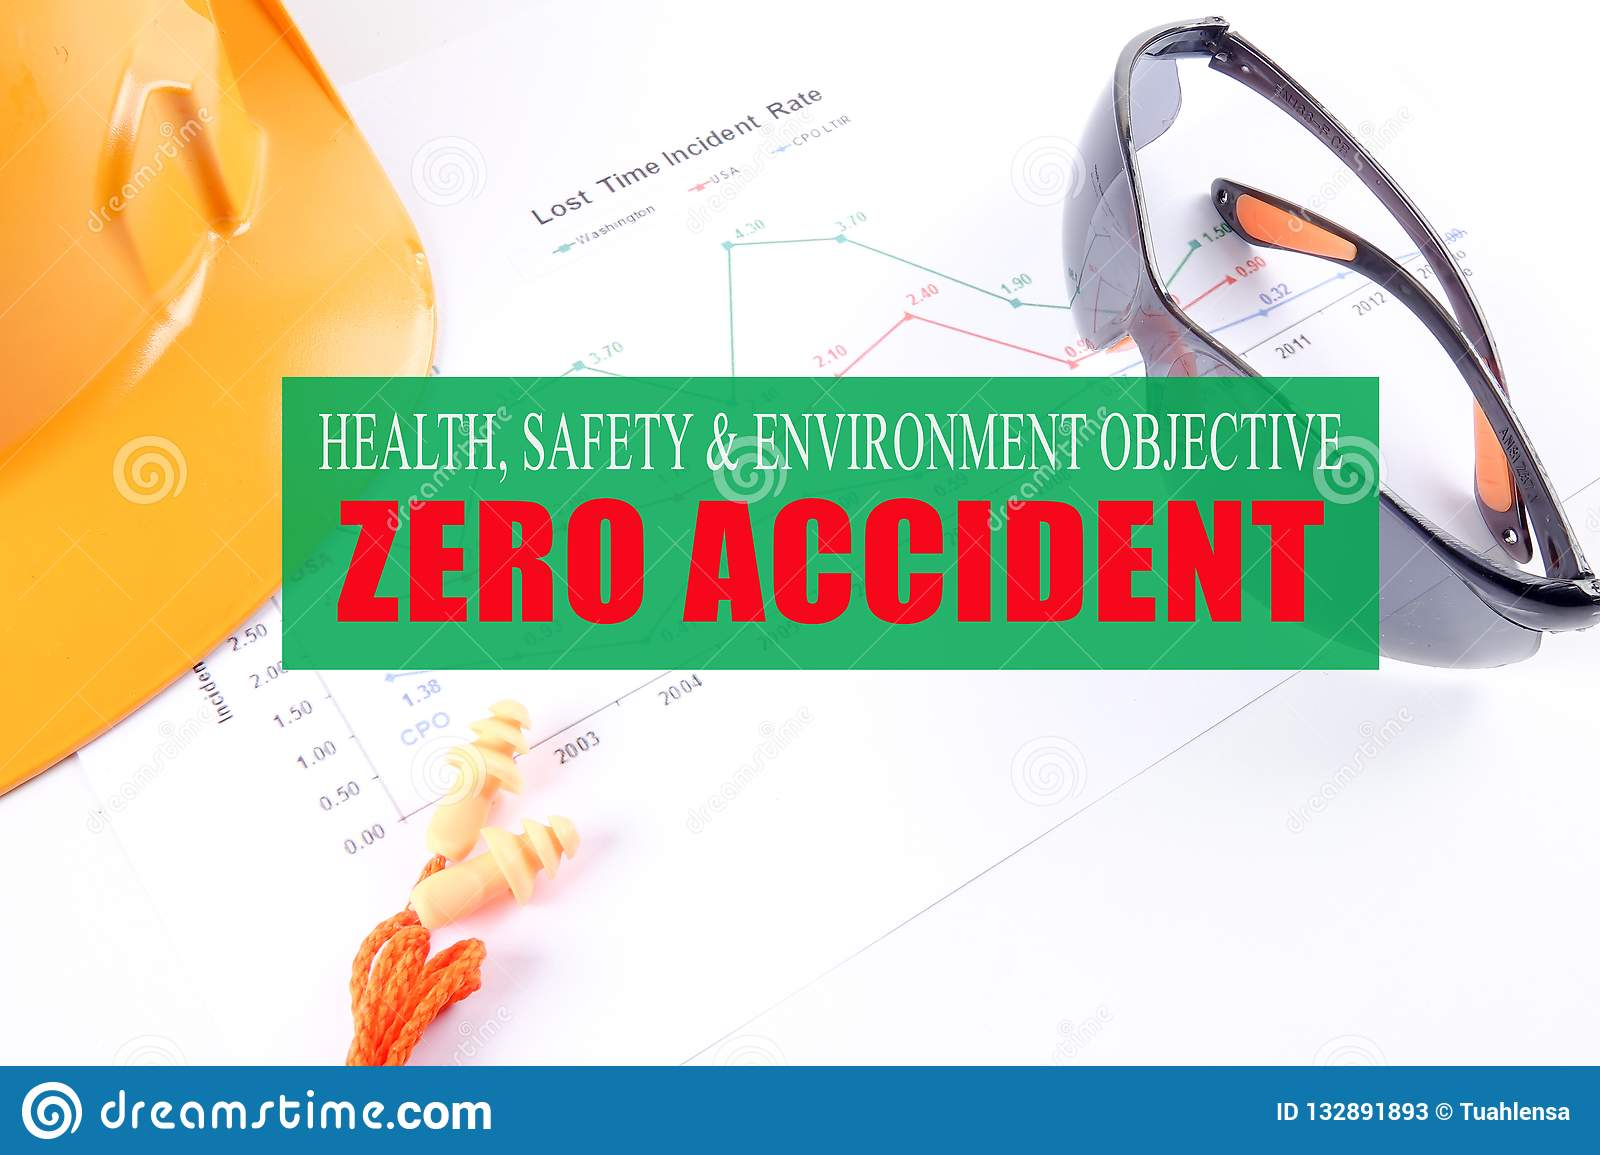 HEALTH,SAFETY & ENVIRONMENT OBJECTIVE: ZERO ACCIDENT with yellow